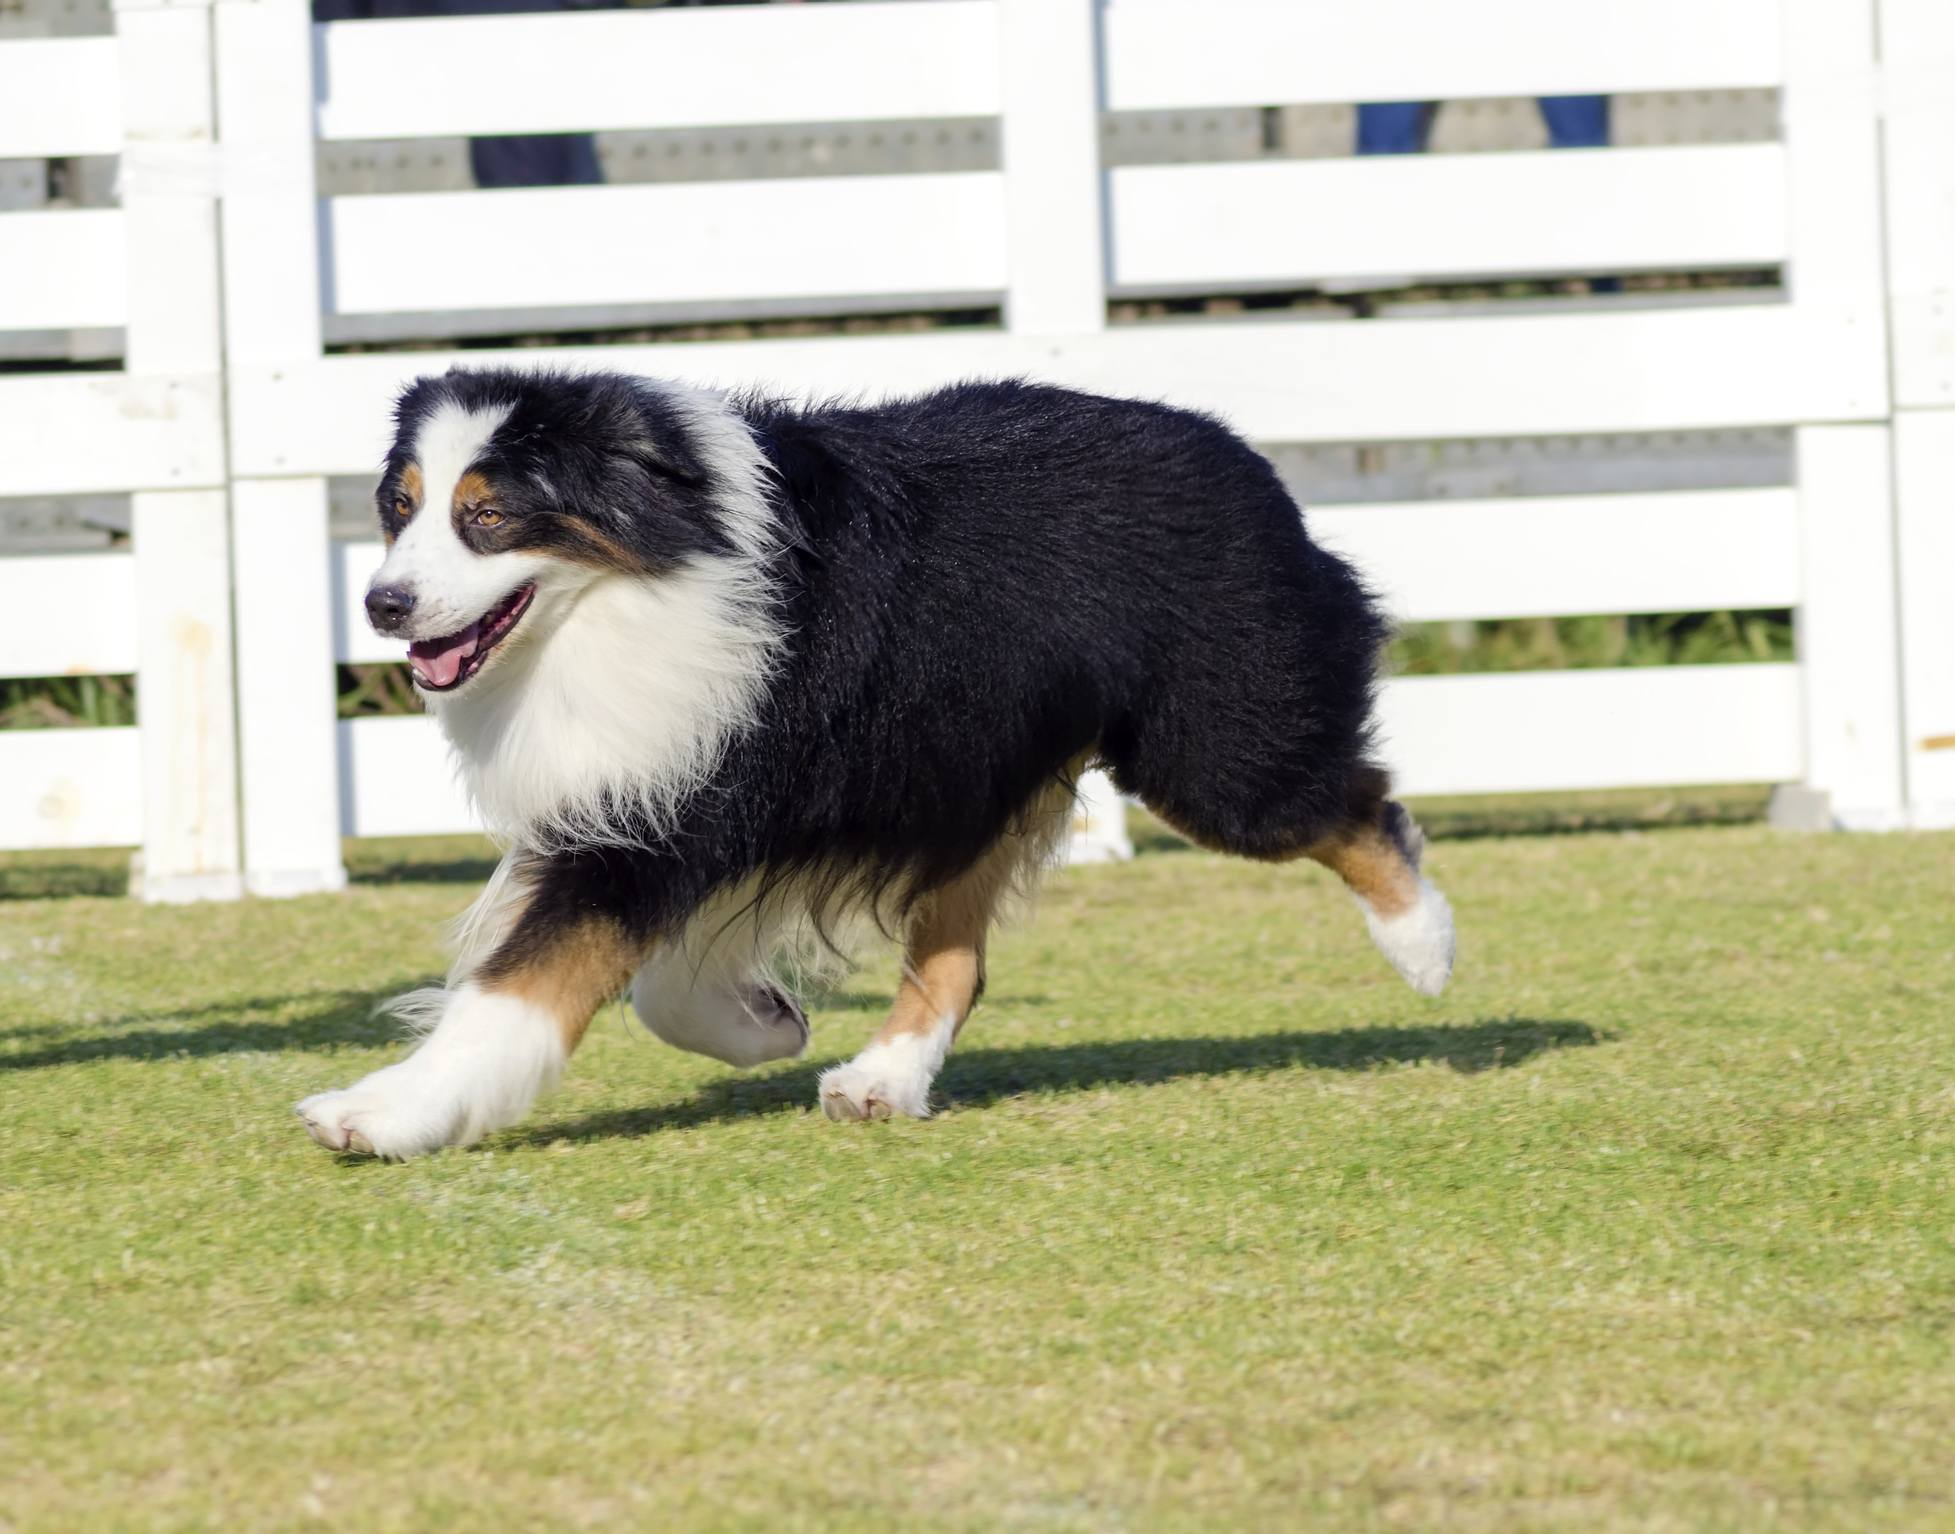 English Shepherd dog